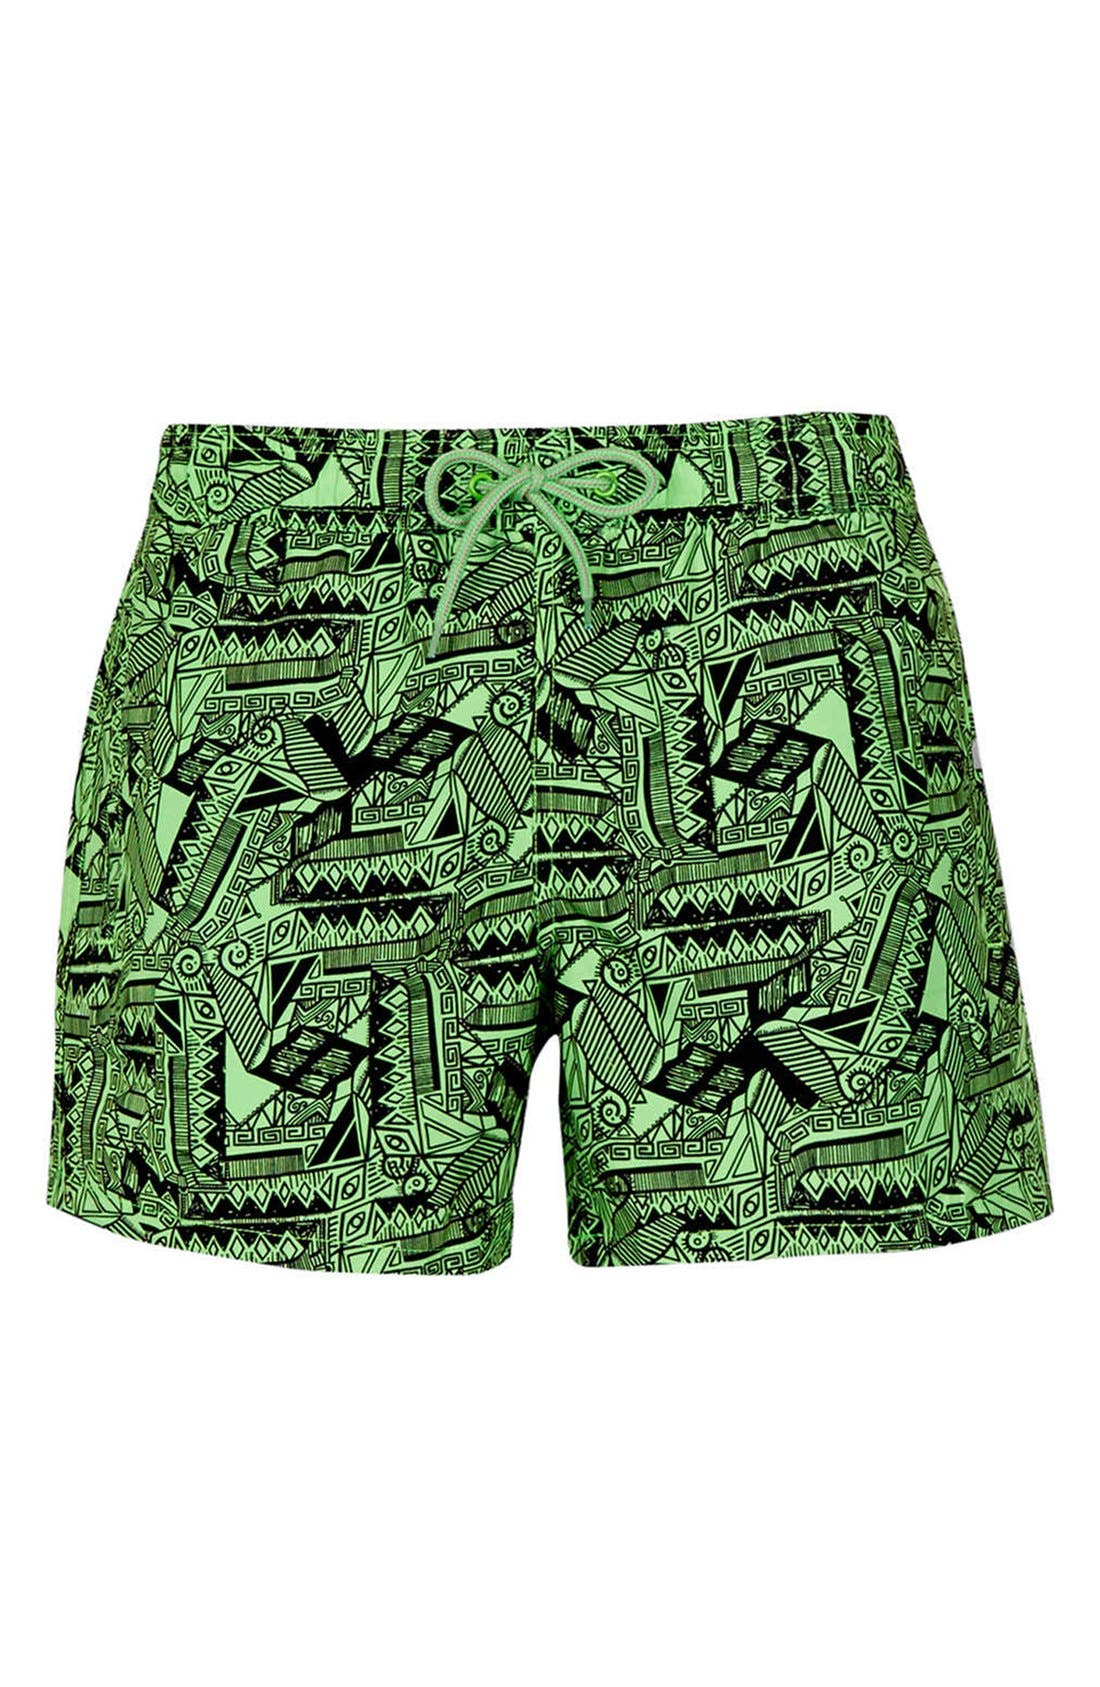 Alternate Image 1 Selected - Topman 'Crocodillio' Swim Trunks